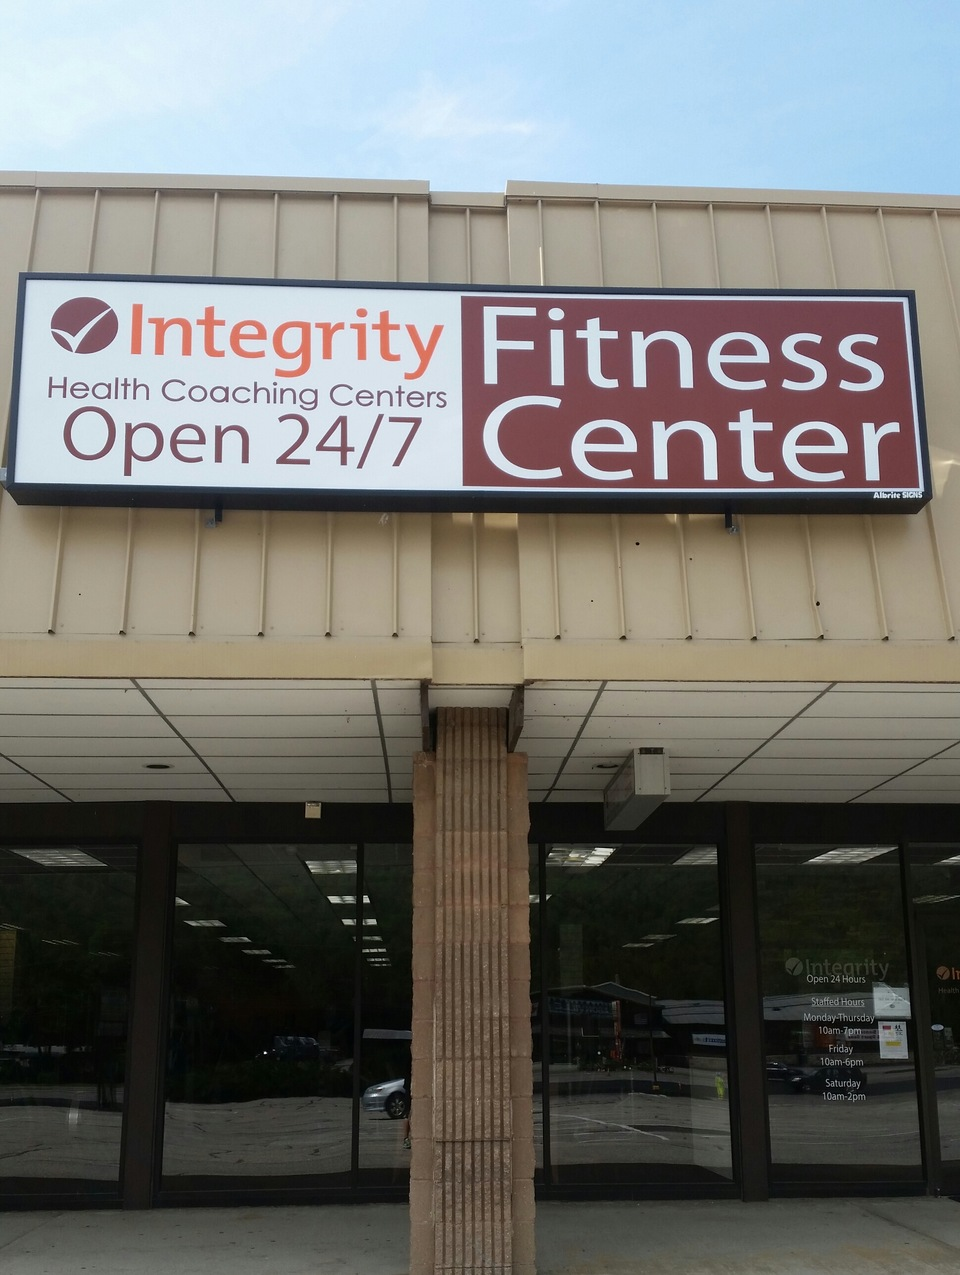 Integrity Health Coaching Centers